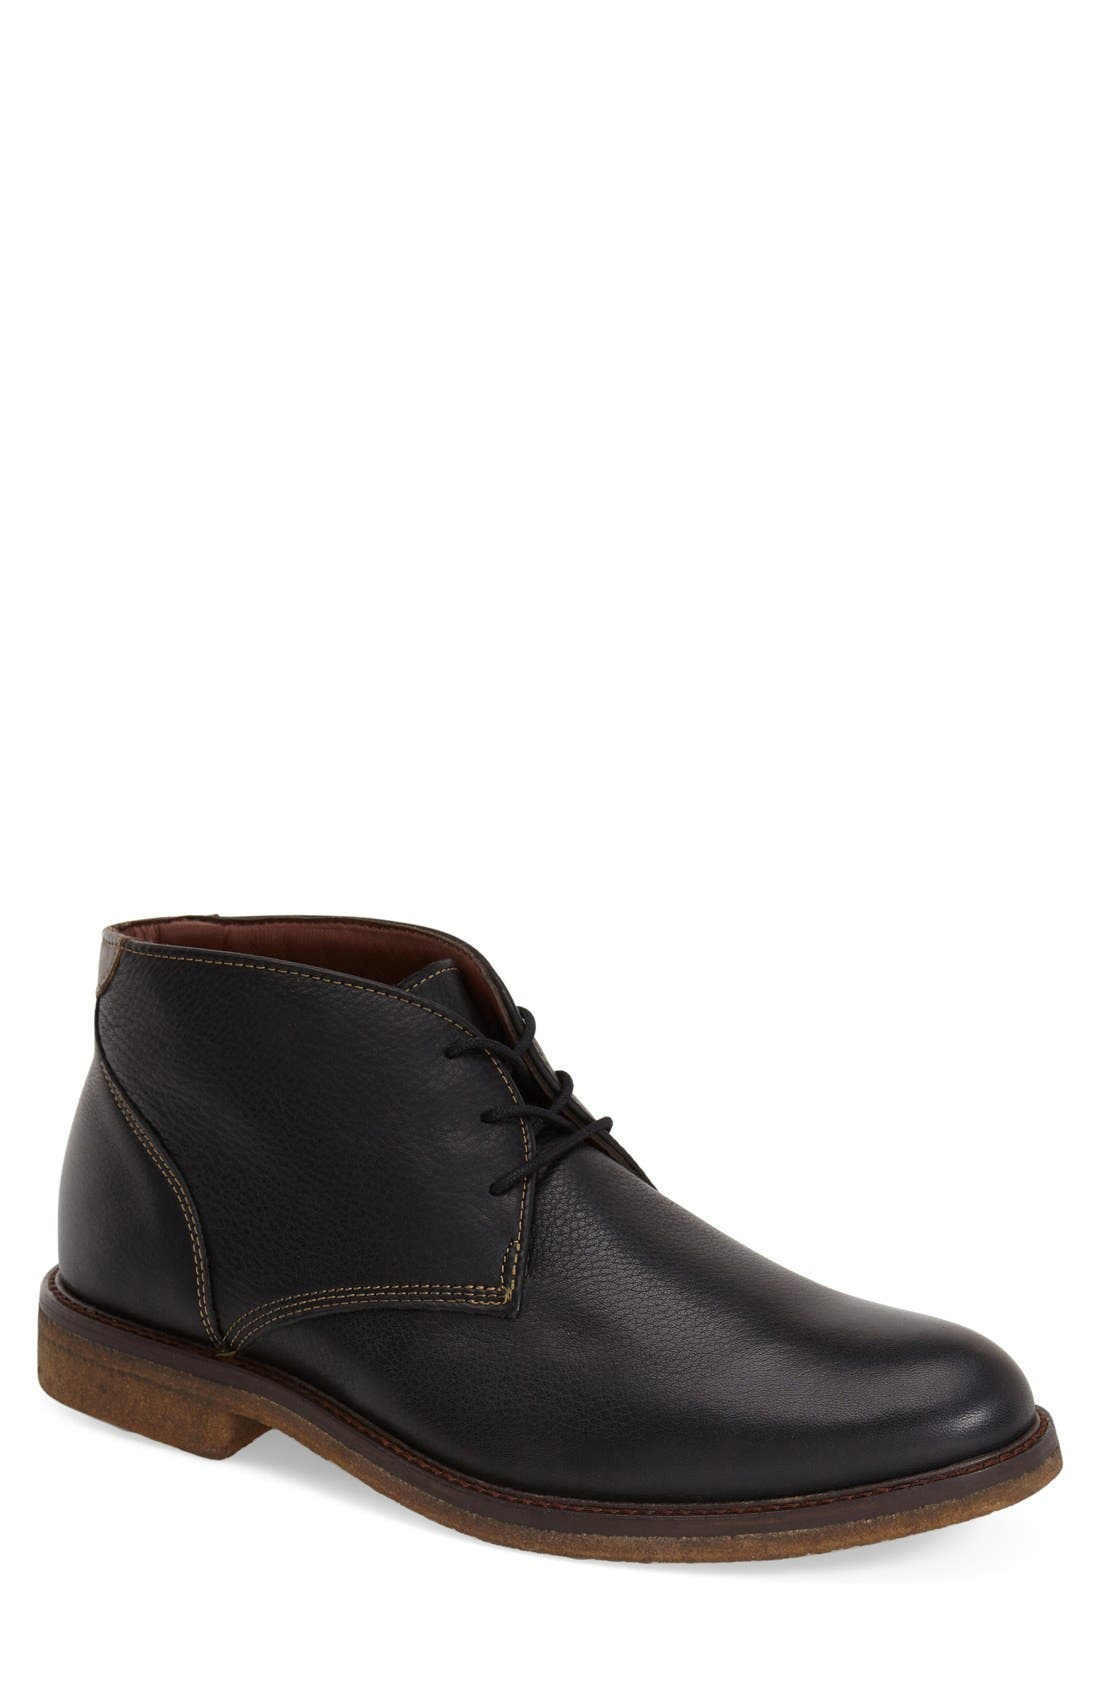 'Copeland' Suede Chukka Boot,                             Main thumbnail 1, color,                             BLACK LEATHER